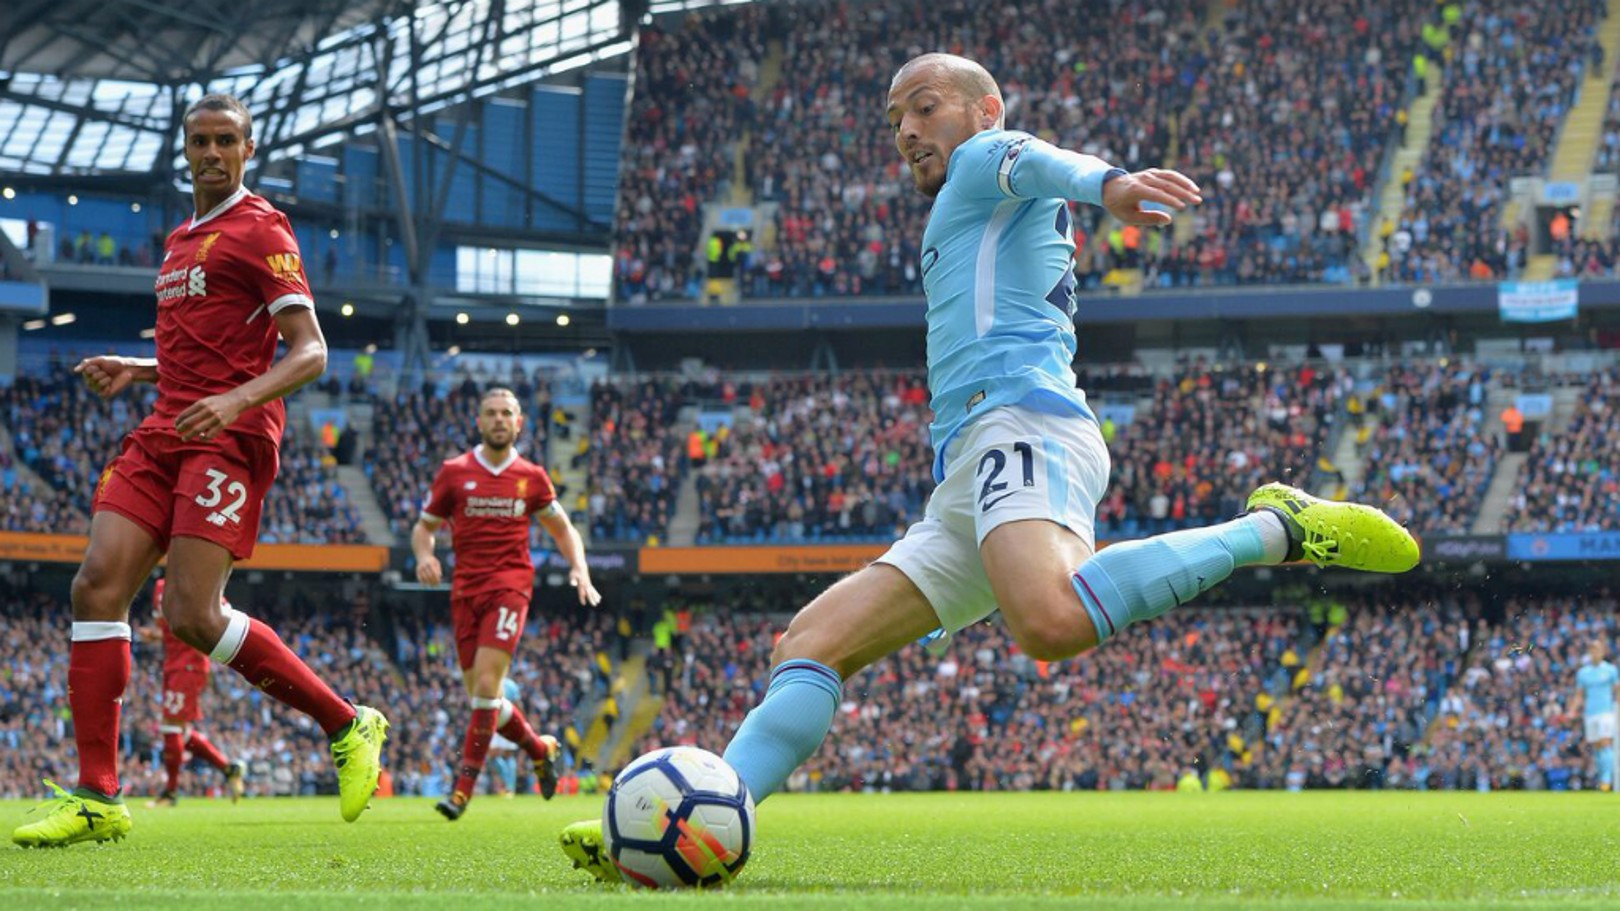 TOUCHLINE: David Silva stretches to keep the ball in play